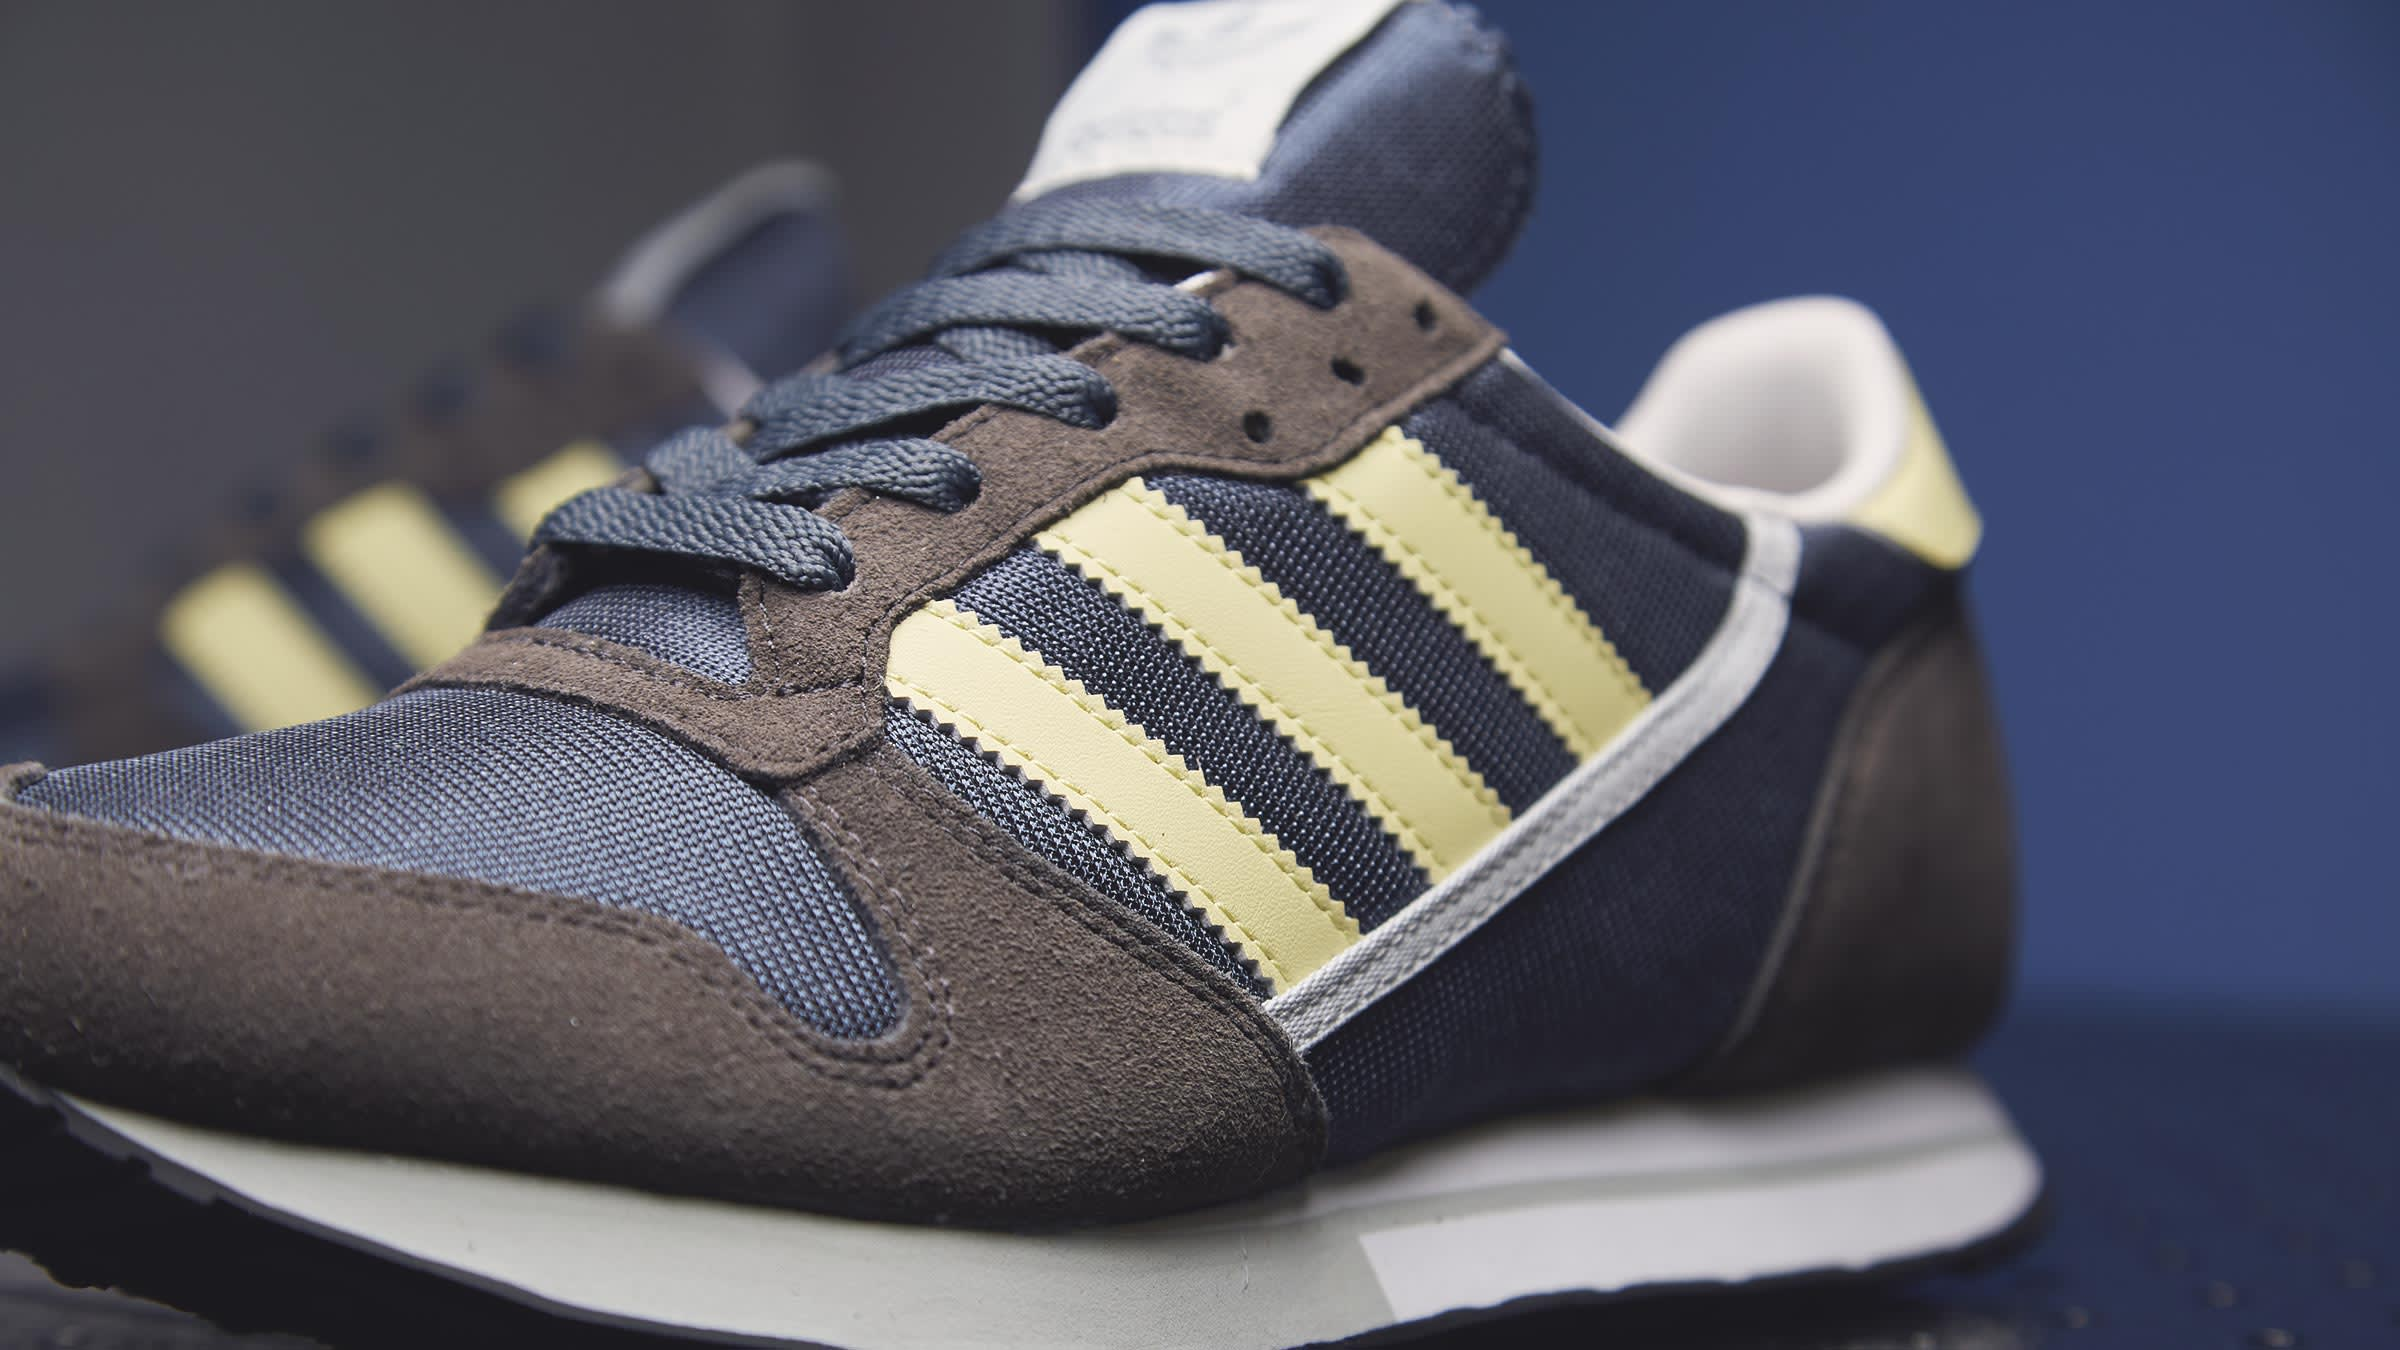 bdbbceae1 A one-to-one reissue of the ZX 280  from the original colour-way to the  classic  80s details